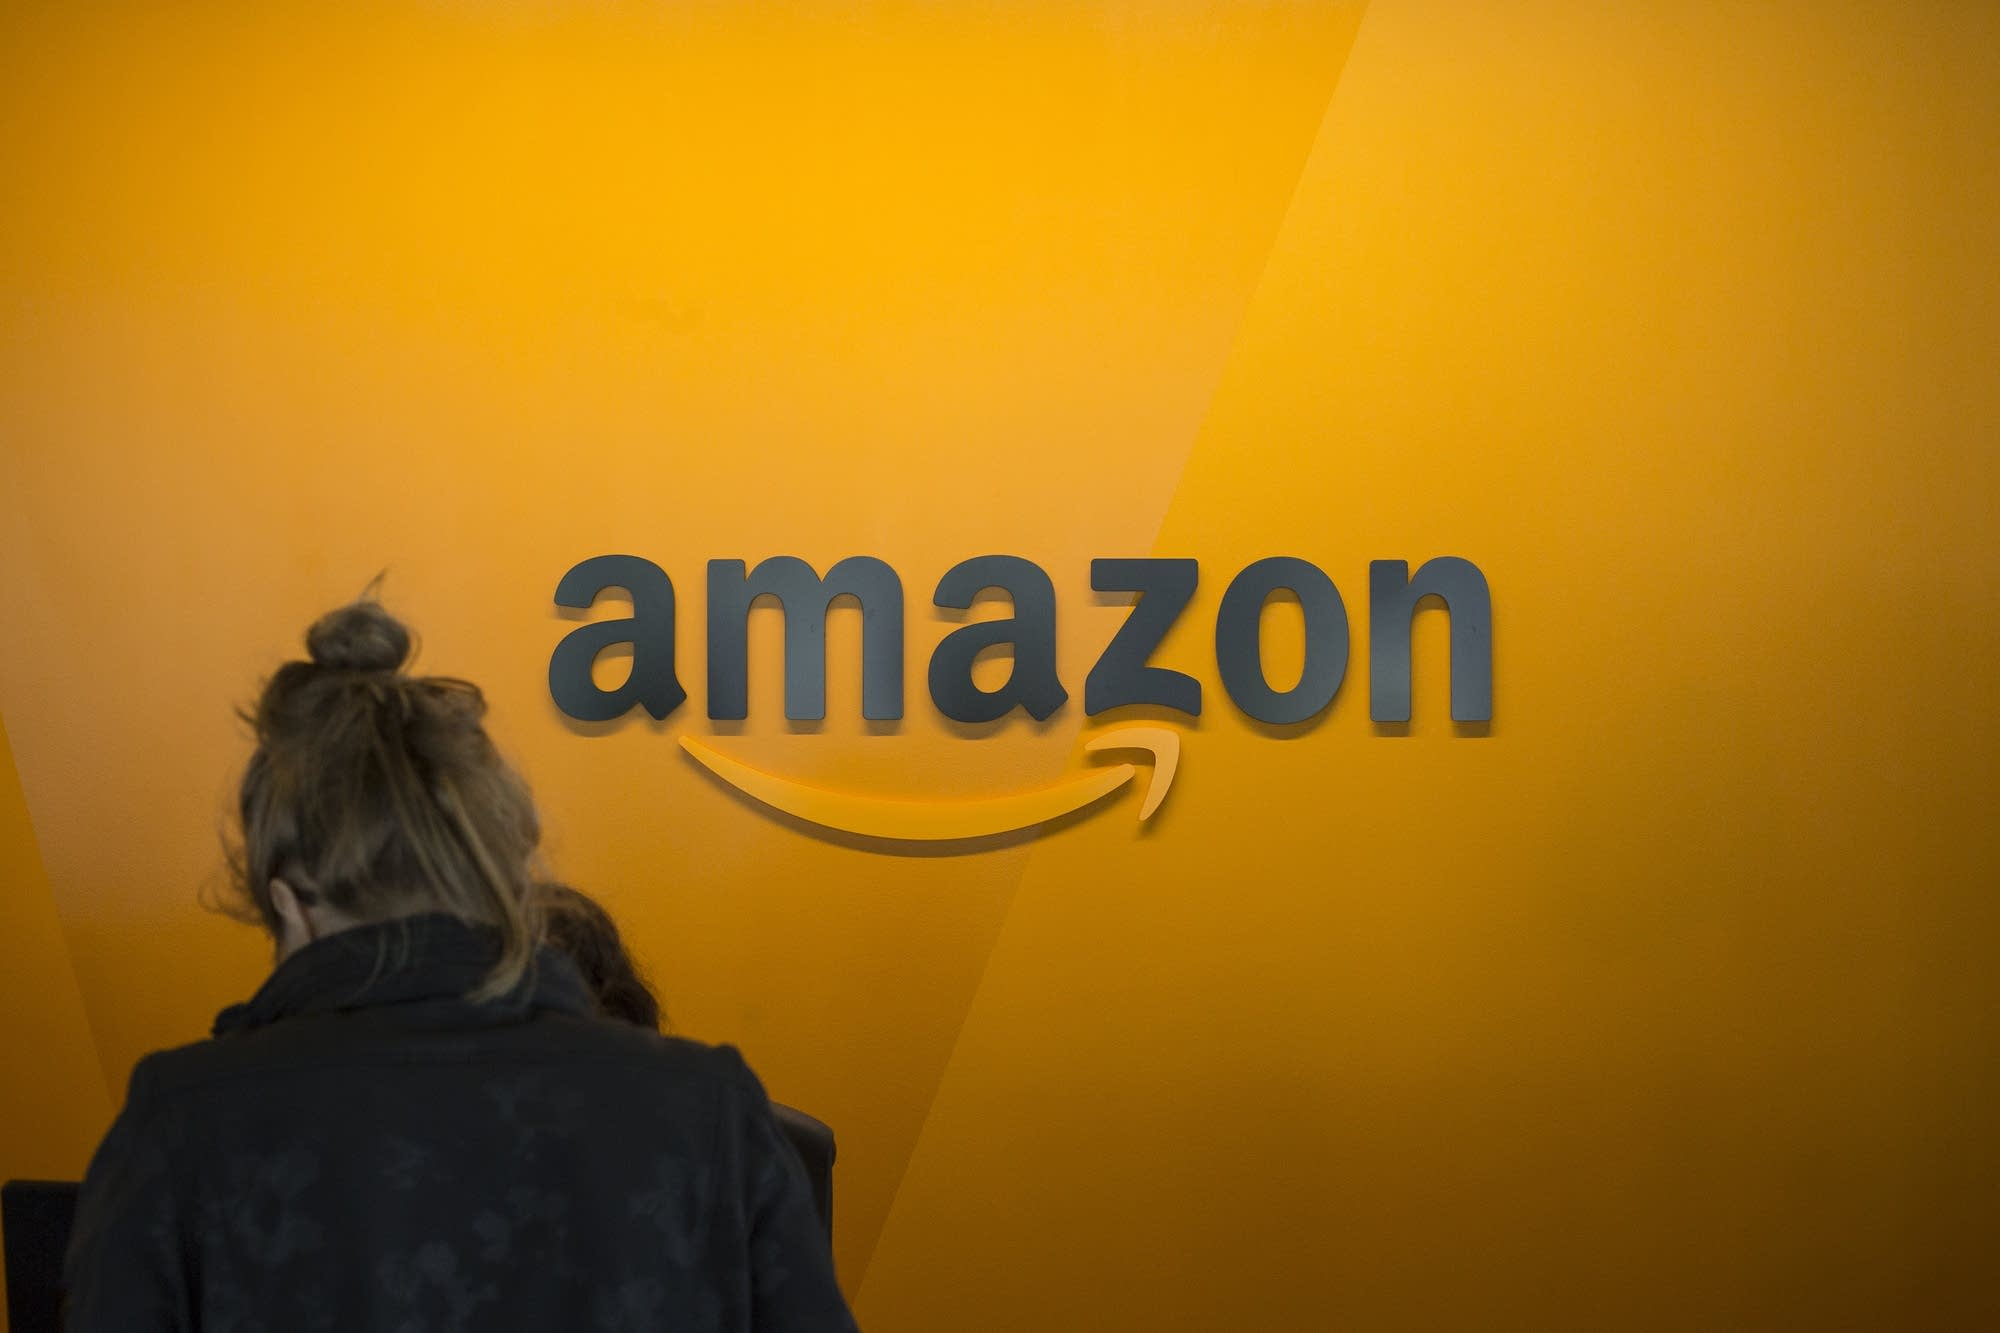 Amazon to open new Vancouver office, create 3000 jobs